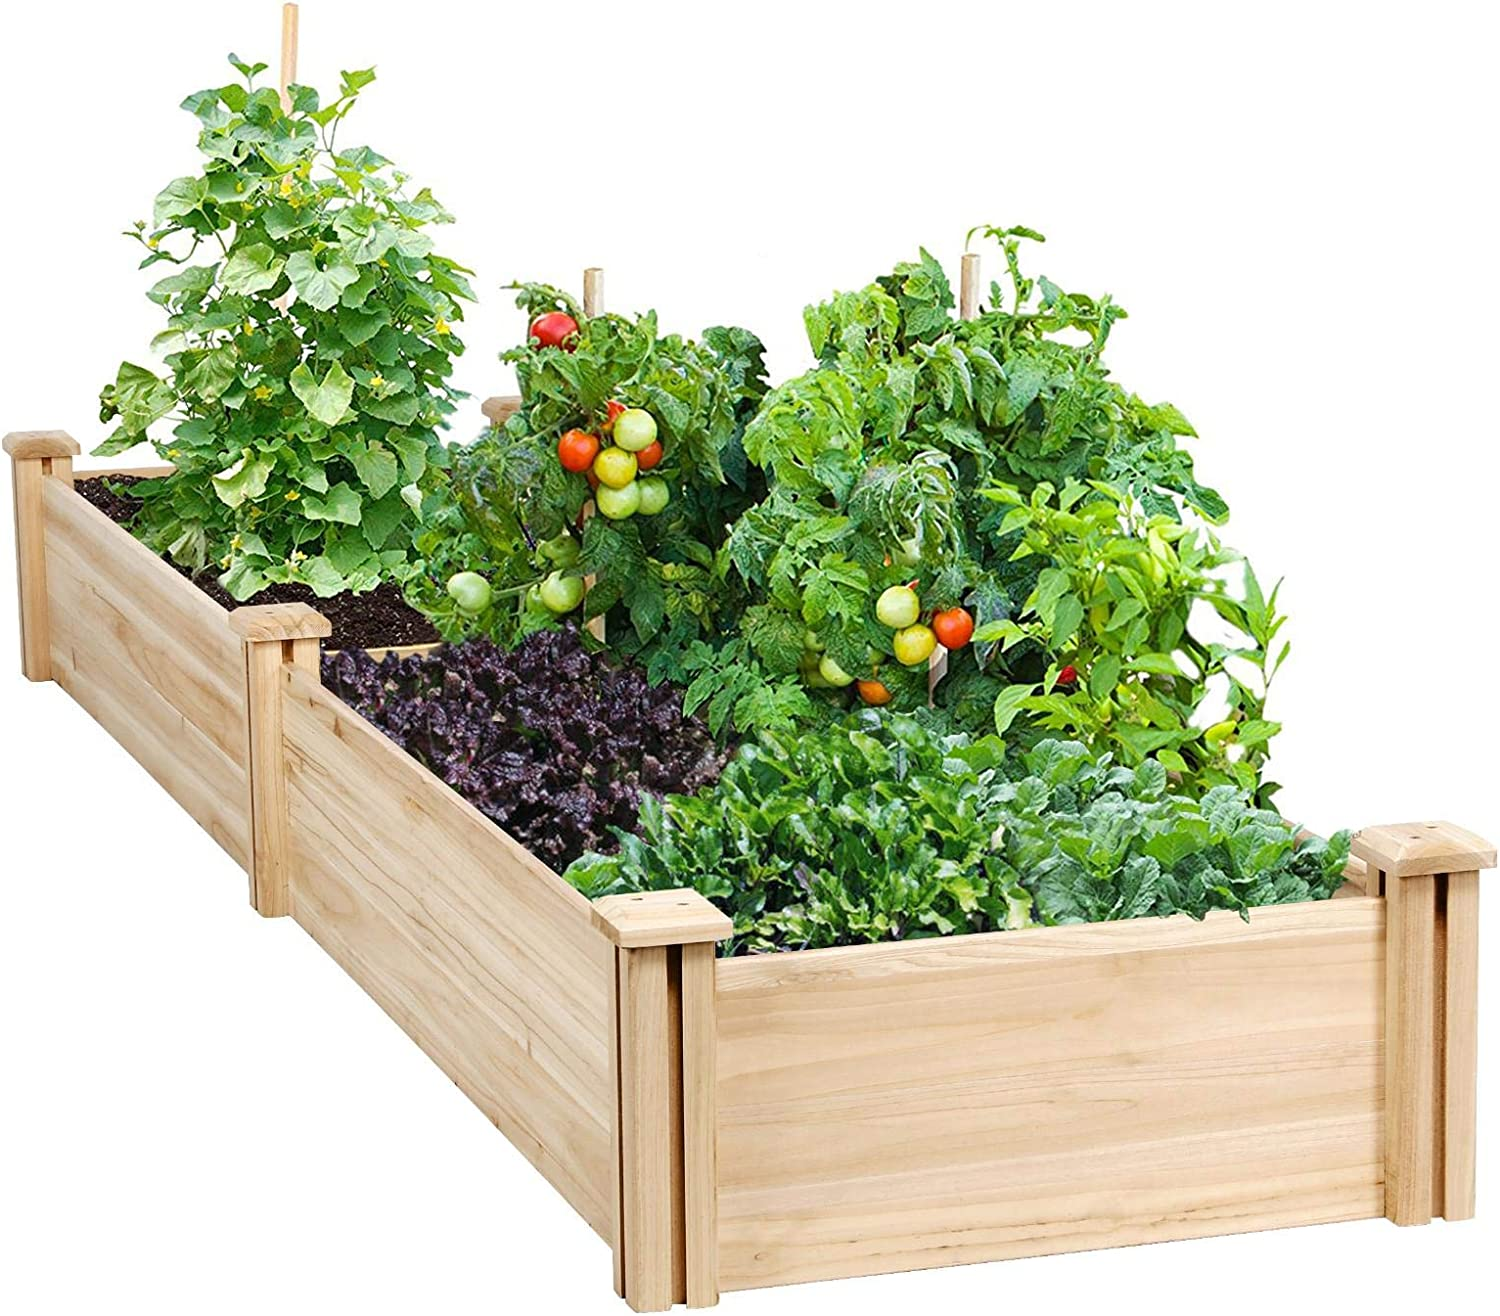 45x34.6x35.4inch, Green LYNSLIM Raised Garden Bed with Greenhouse Cover Wooden Planter Garden Box Kit for Vegetable Flower Herb Grow Outdoor/Yard